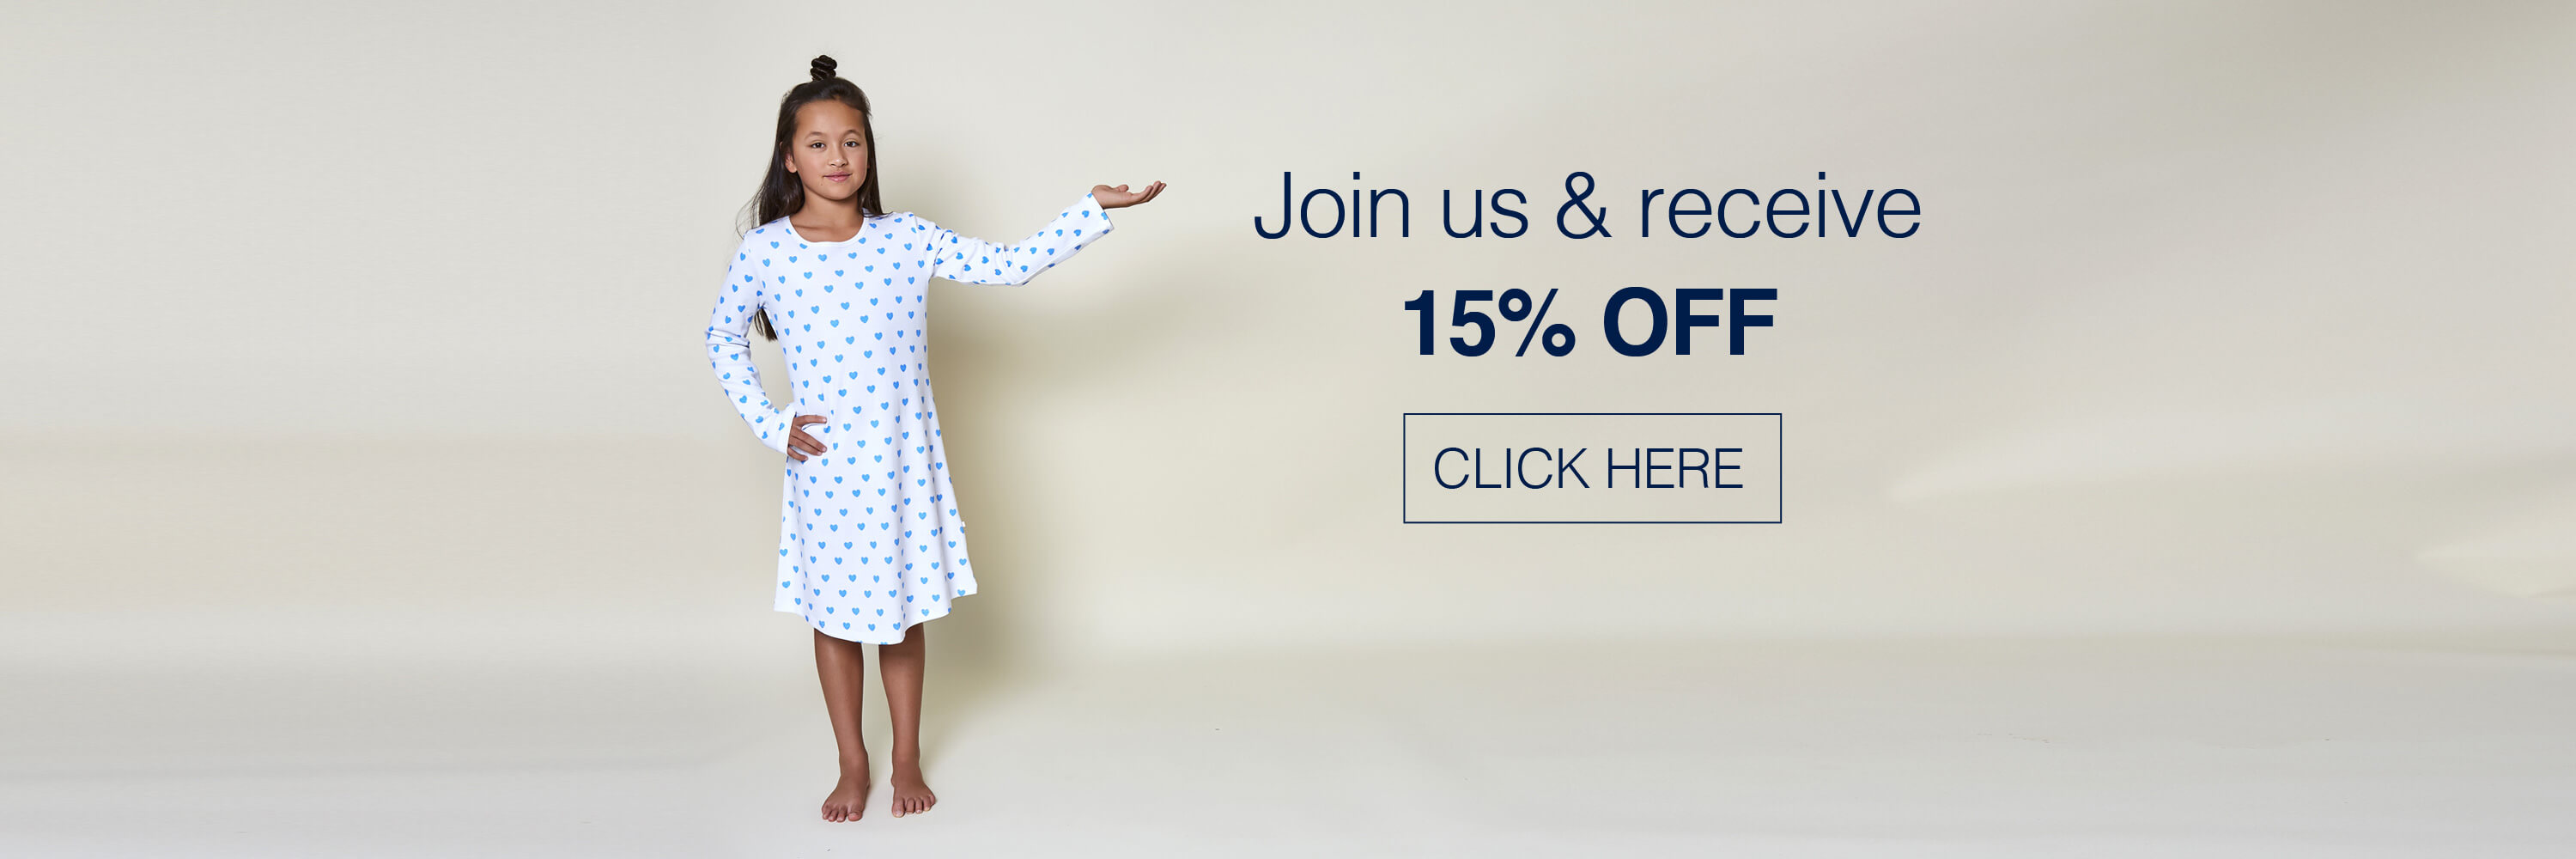 Join us to receive 15% OFF